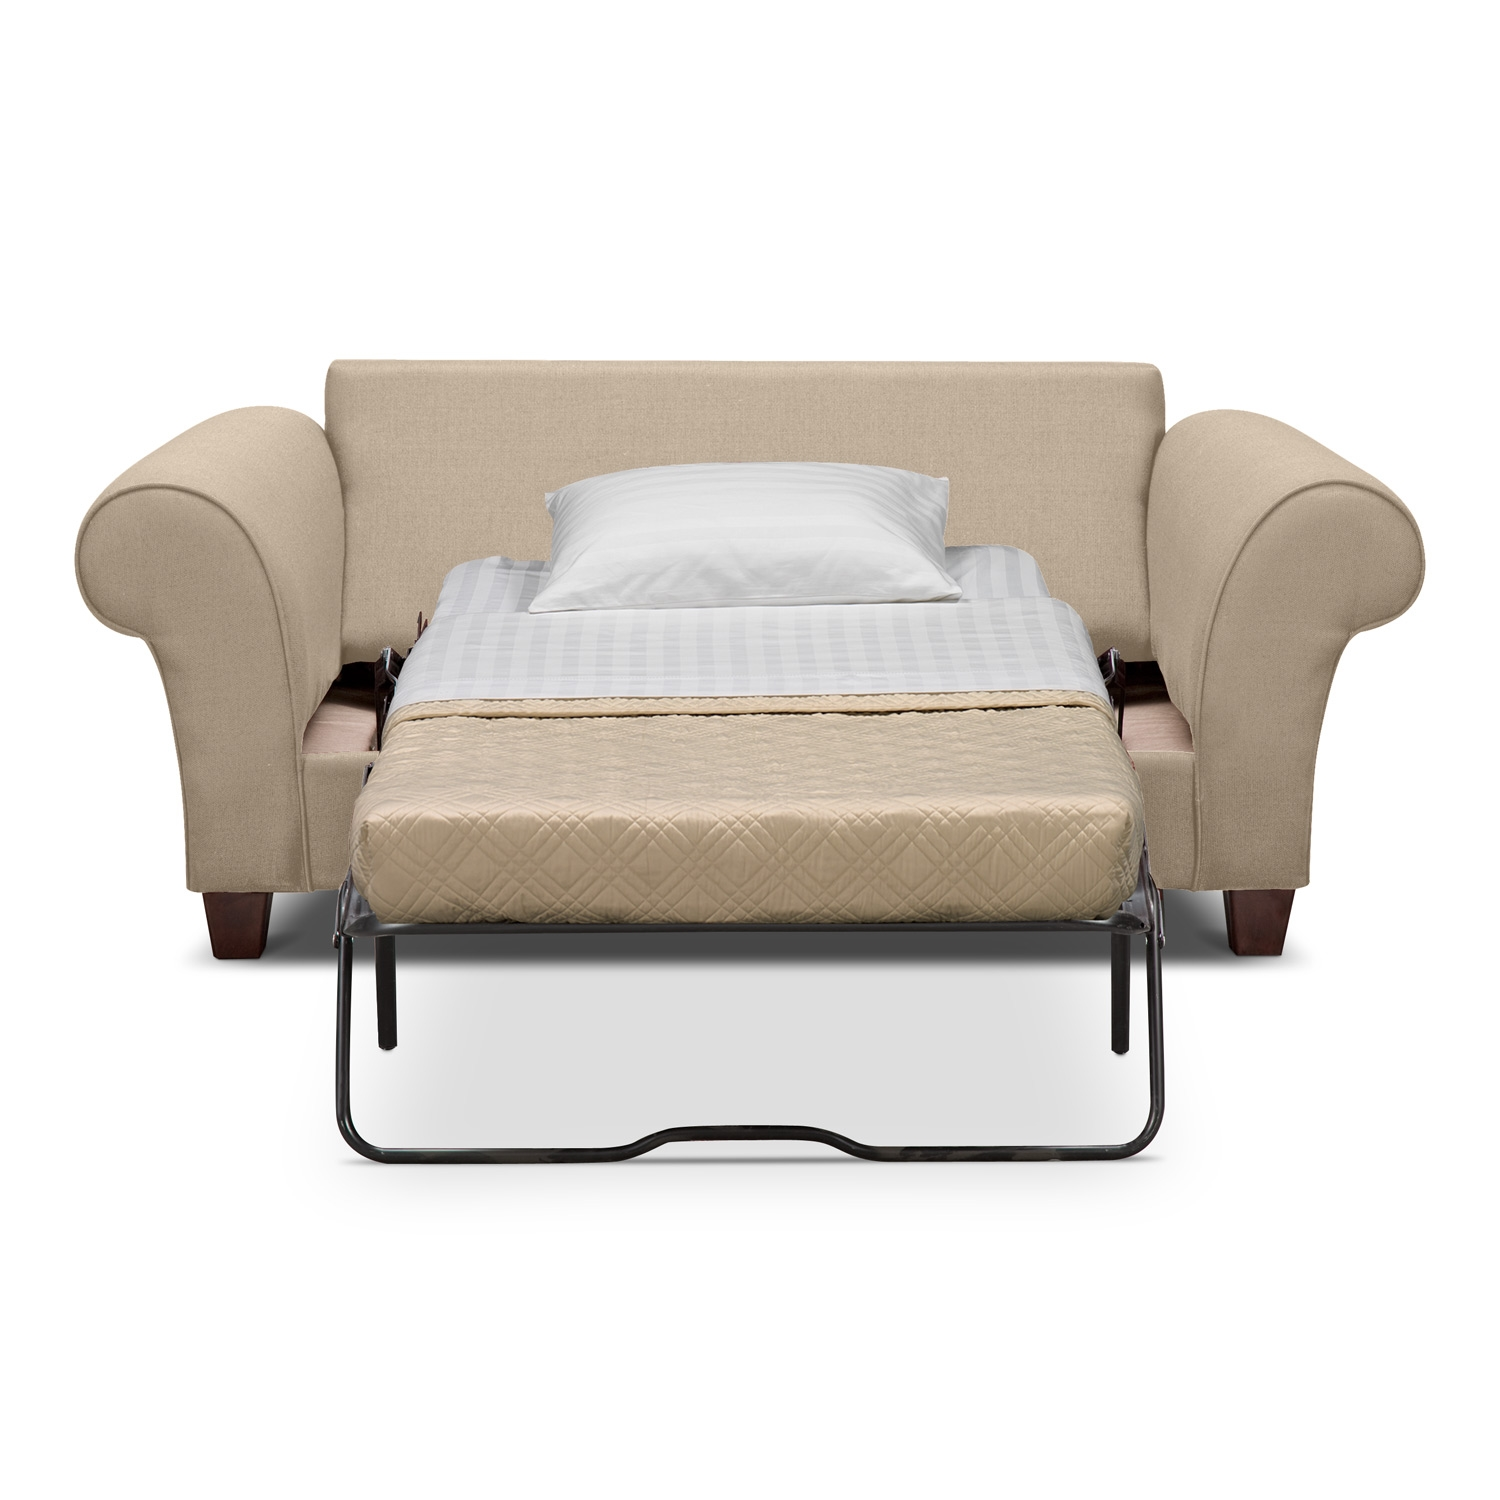 Image of: Twin Sleeper Sofa Chair Image